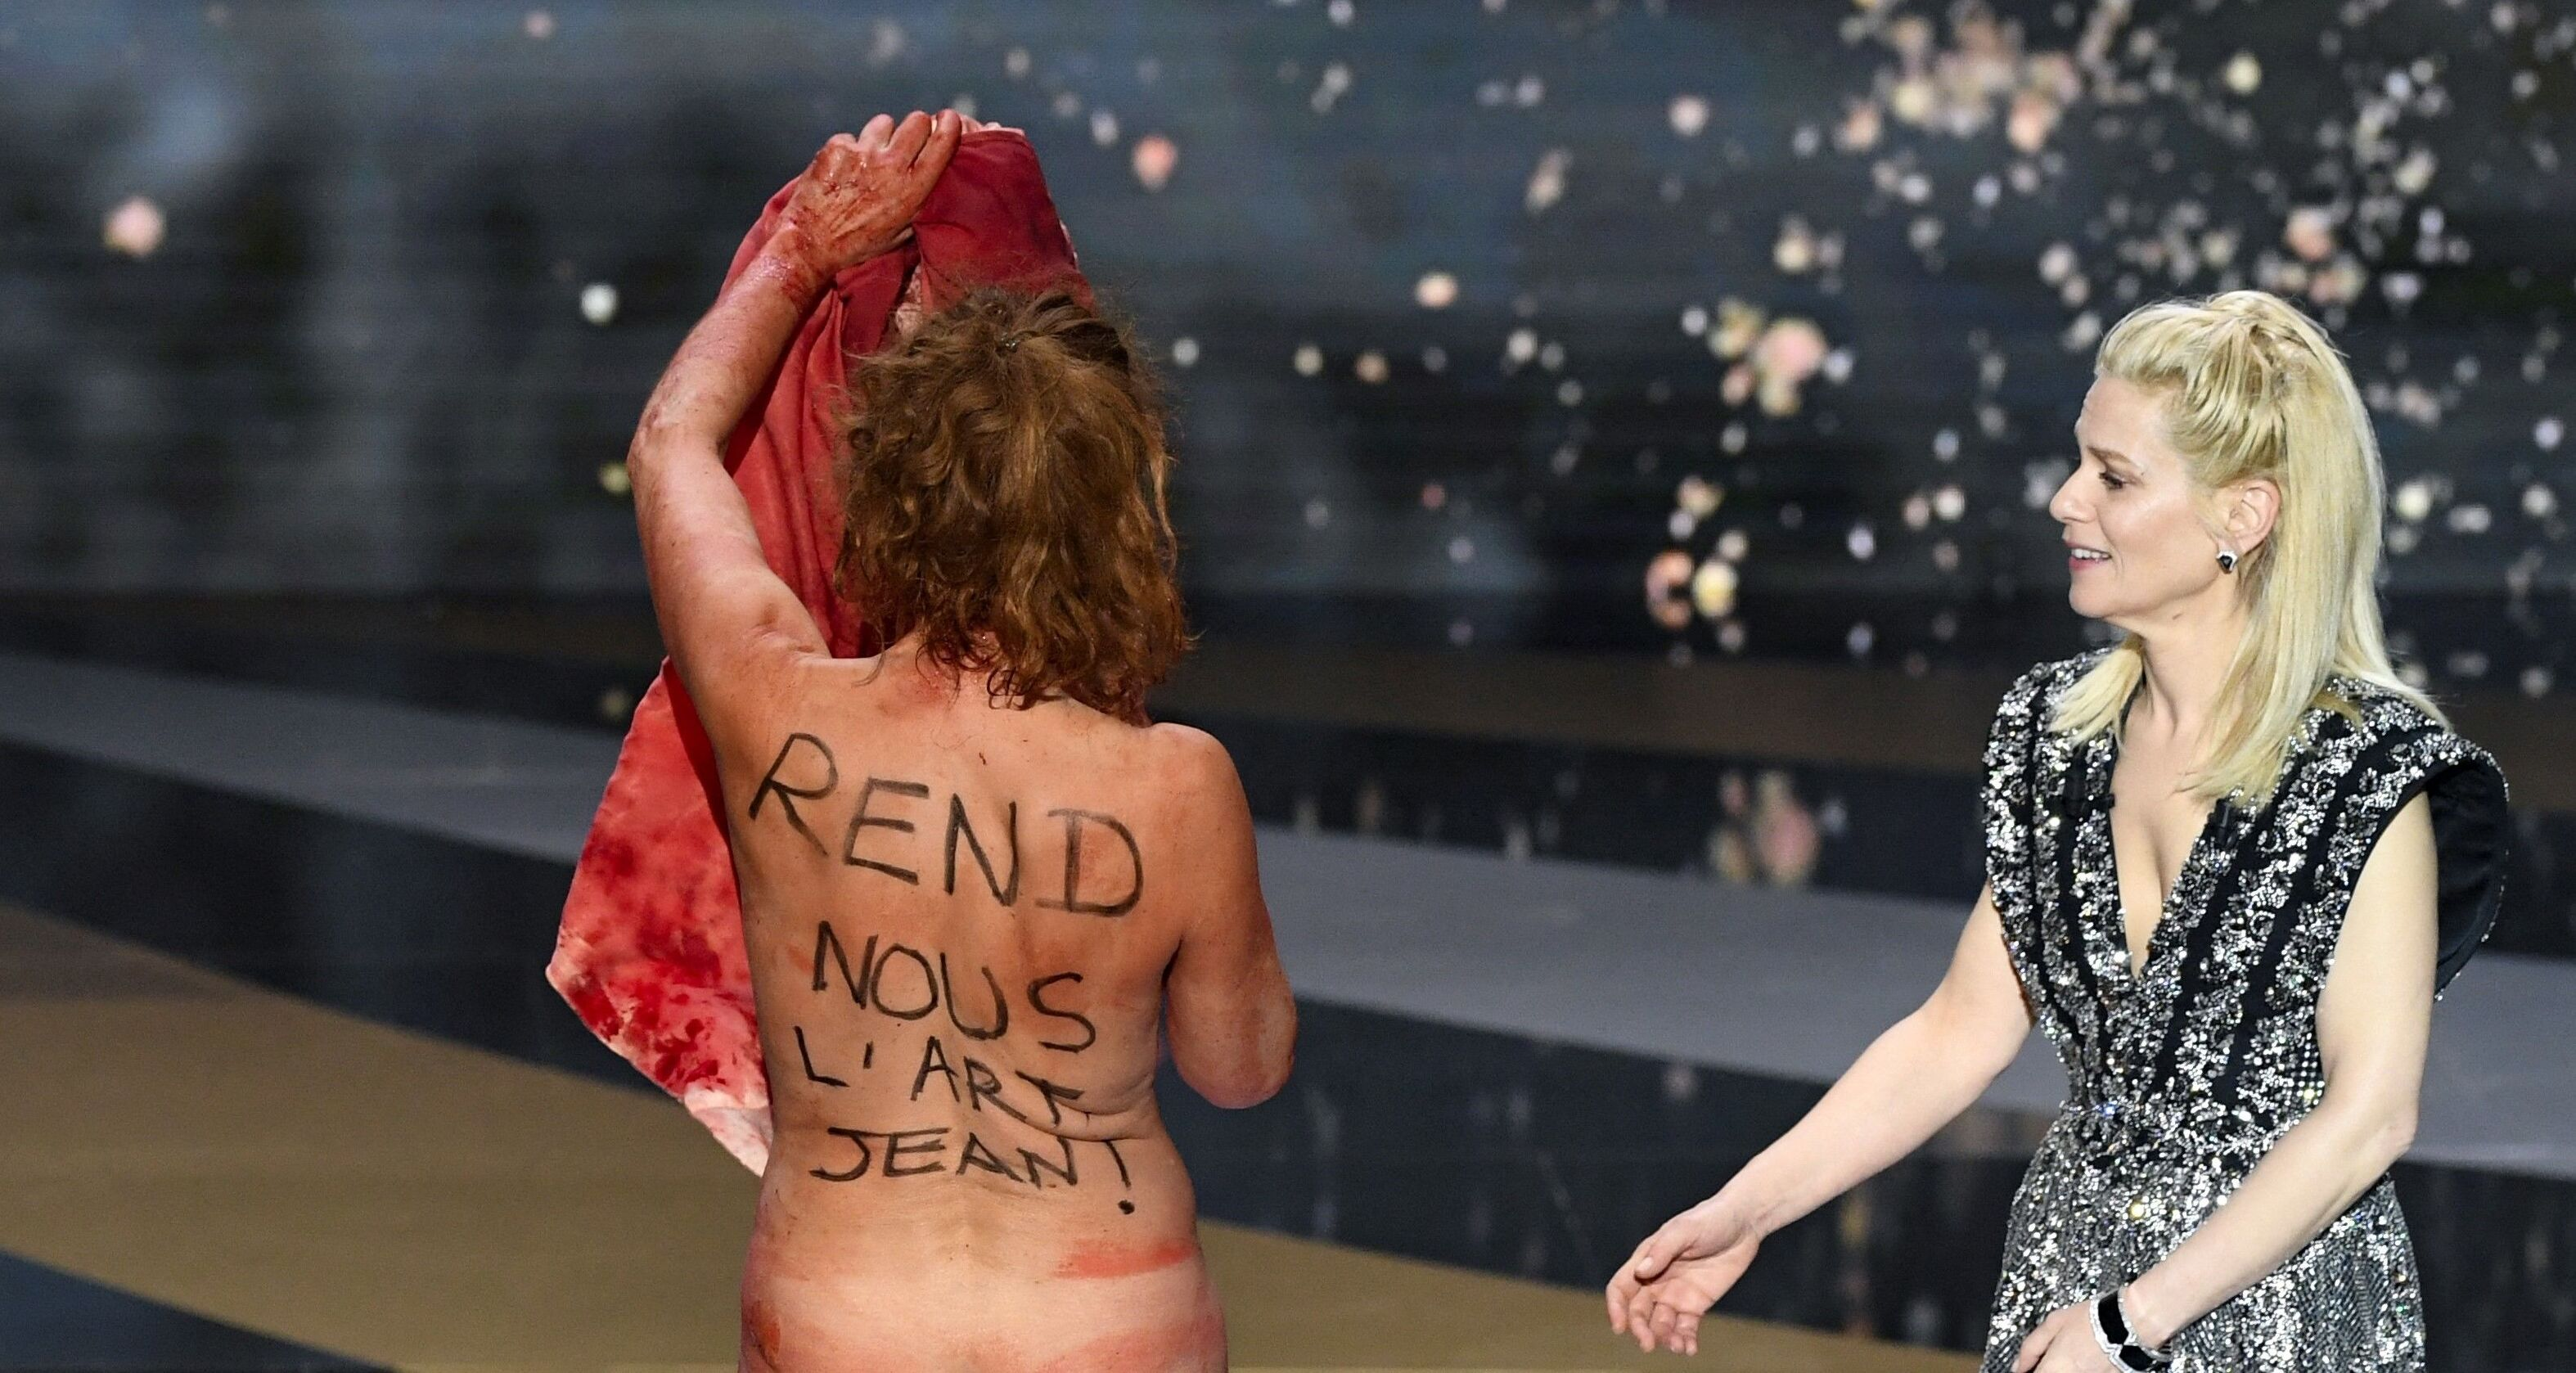 No culture, no future: Actress in naked lockdown protest